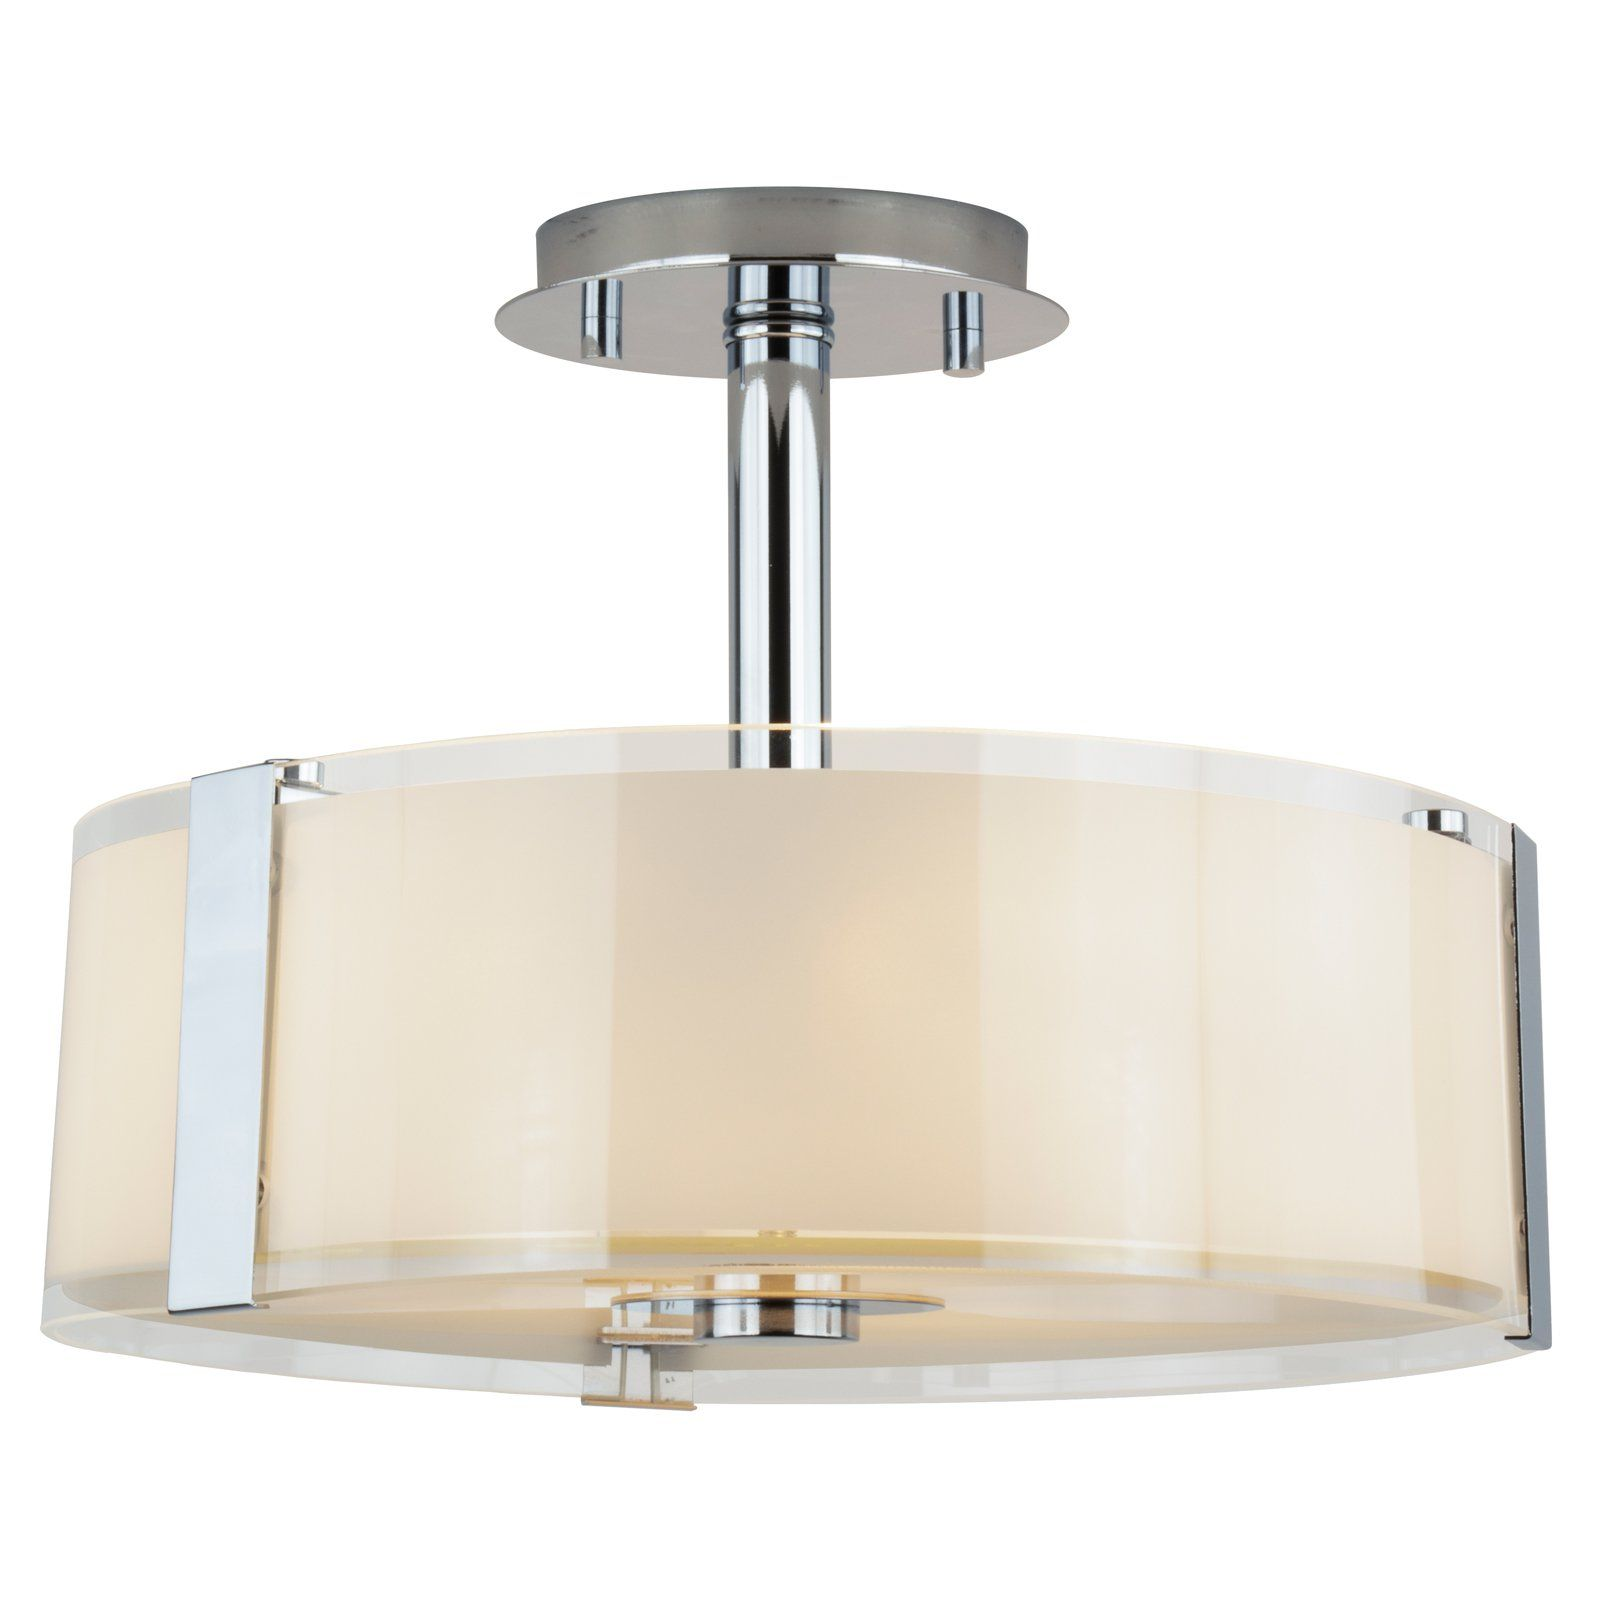 Levico Lighting Capri Lv B38 Semi Flush Mount Light